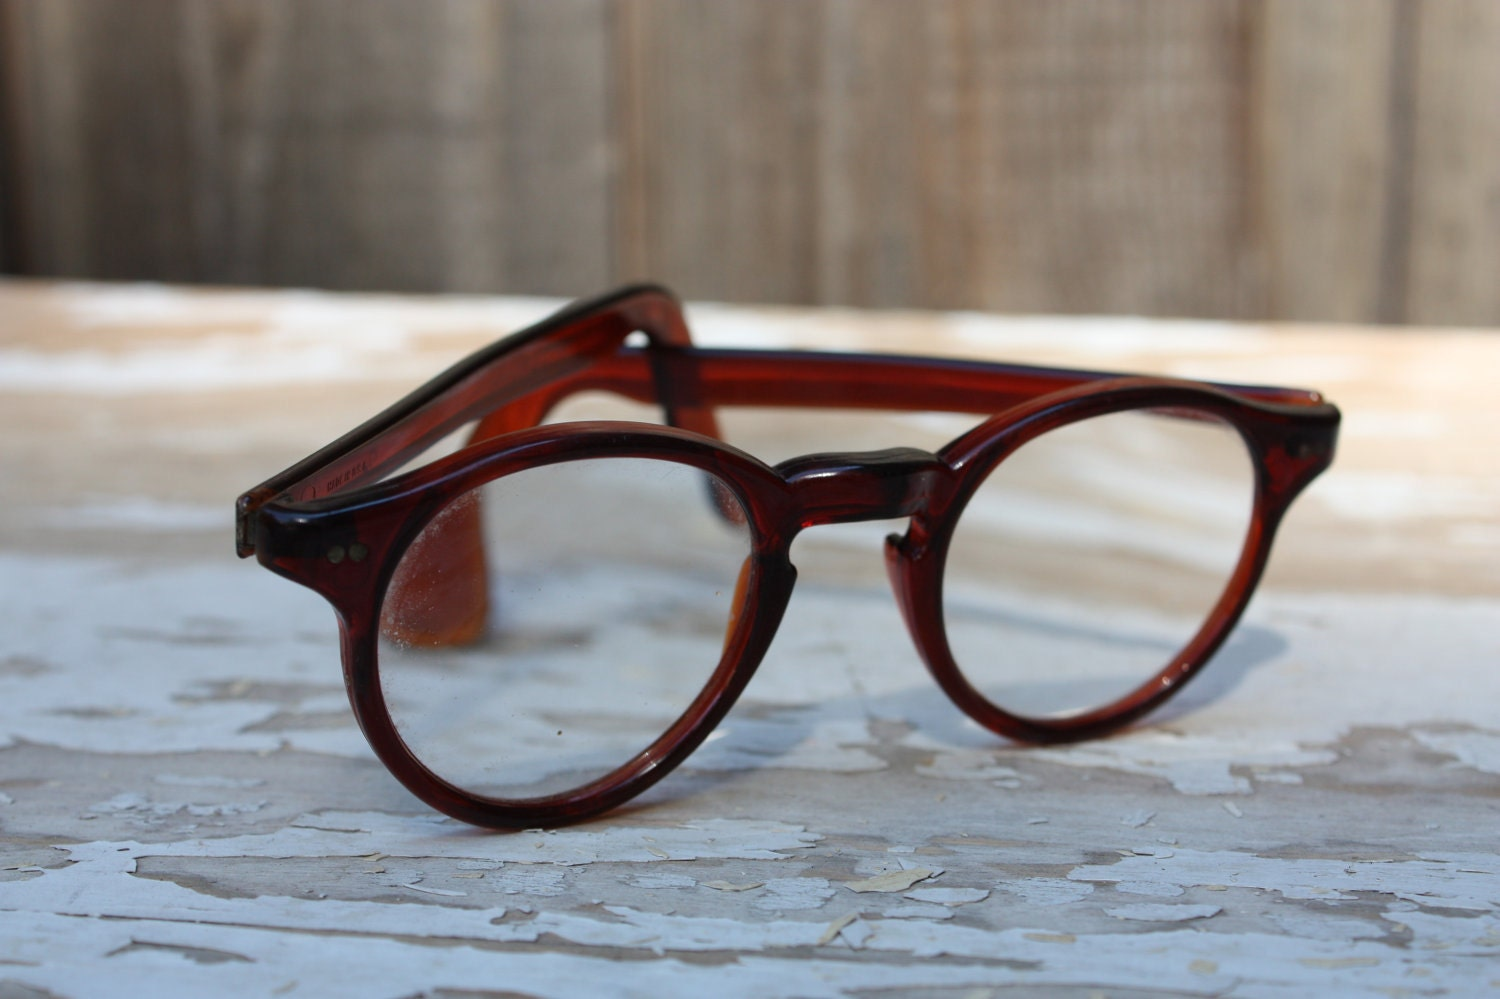 Round Glasses Frame, Round Eye Glasses, Round Reading Glasses